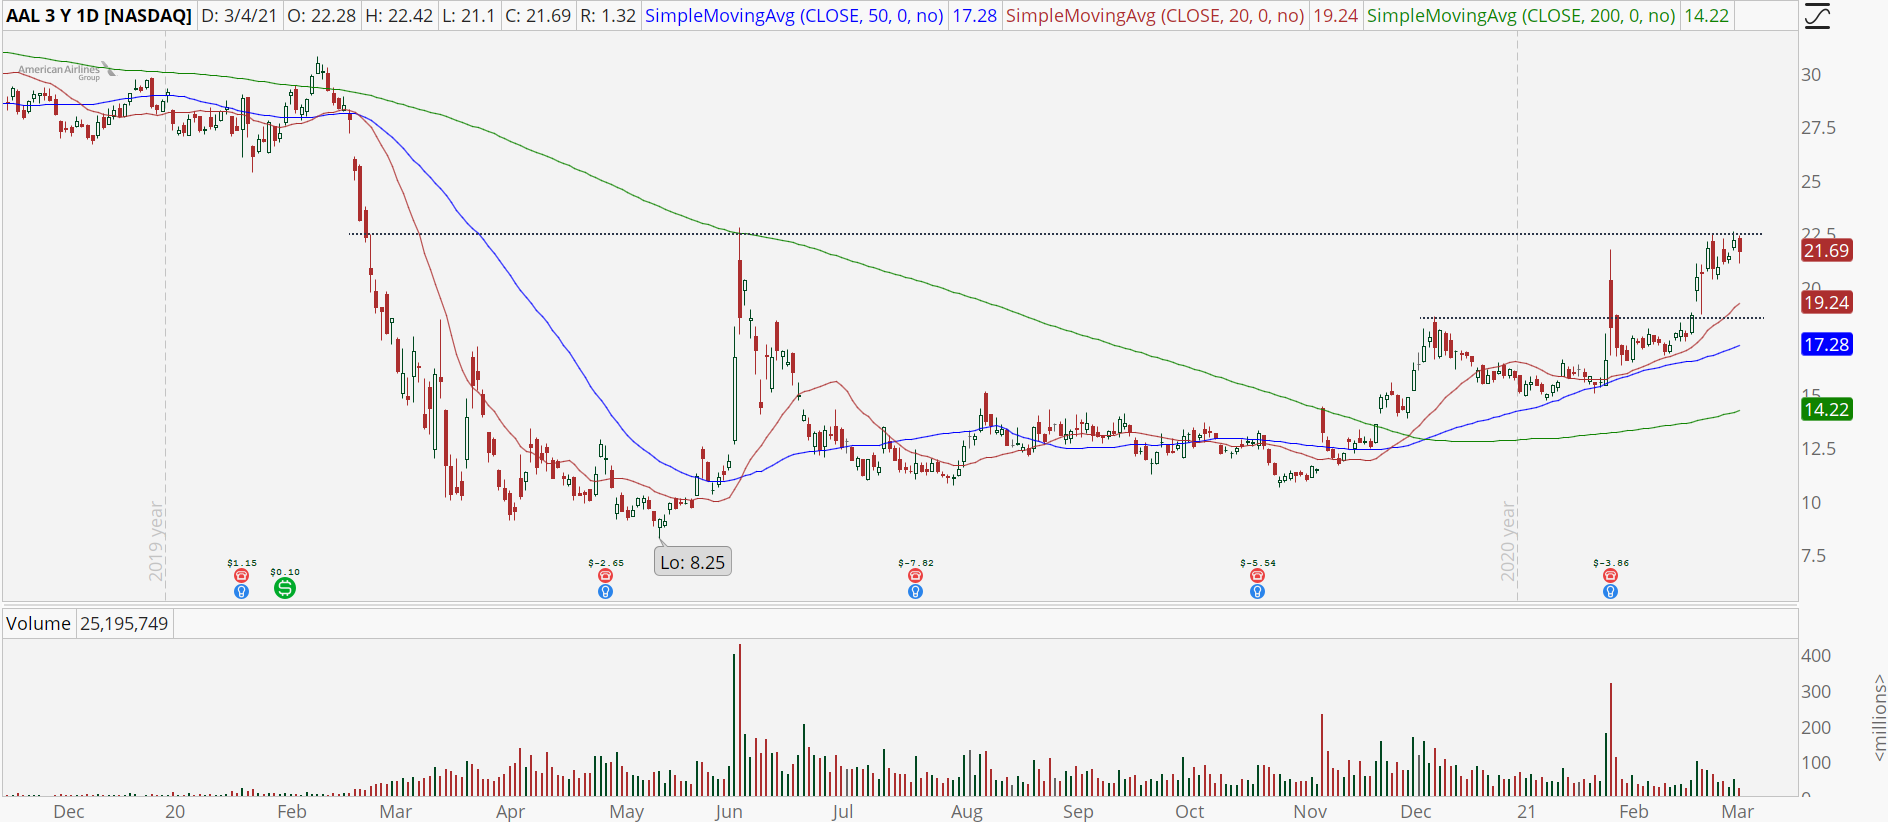 American Airlines (AAL) chart with strong uptrend